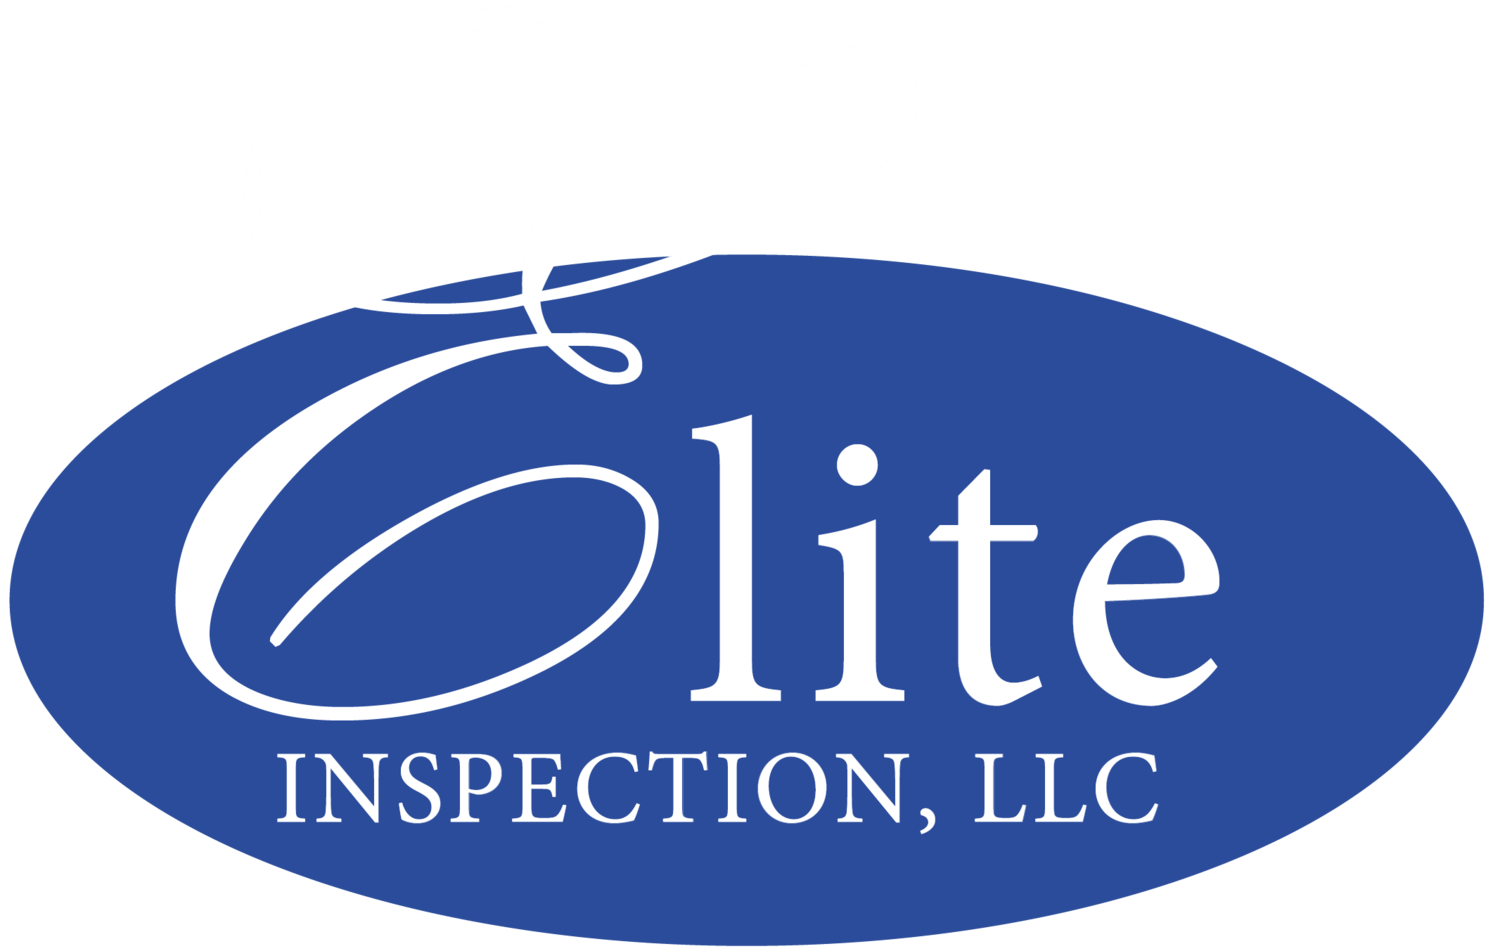 Elite Inspection, LLC